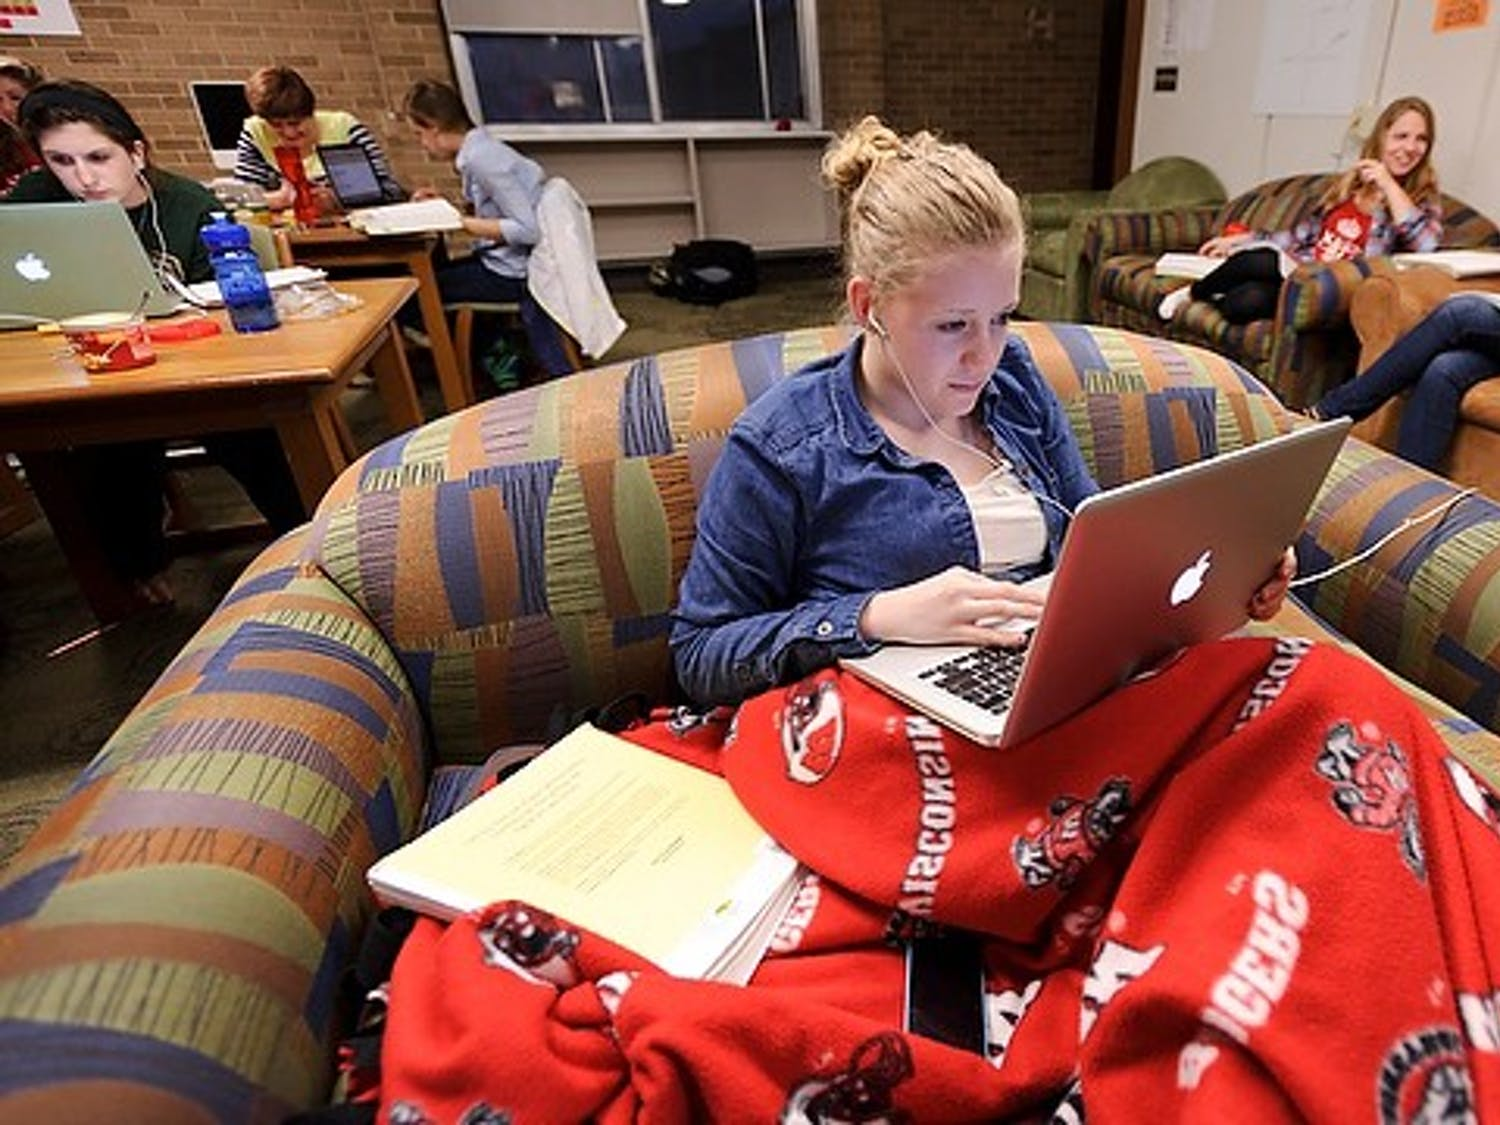 Home is where the Wisconsin Badger football blanket is. First-year undergraduate Erin Wendt settles in with her laptop computer to study in the Women In Science and Engineering (WISE) den in Sellery Residence Hall at the University of Wisconsin-Madison during the evening of April 17, 2013. In the background are fellow WISE residents Bailee Stark, left, and Maria Bakker. The photograph was created for #UWRightNow, a 24-hour multimedia and social-network project. (Photo by Jeff Miller/UW-Madison)